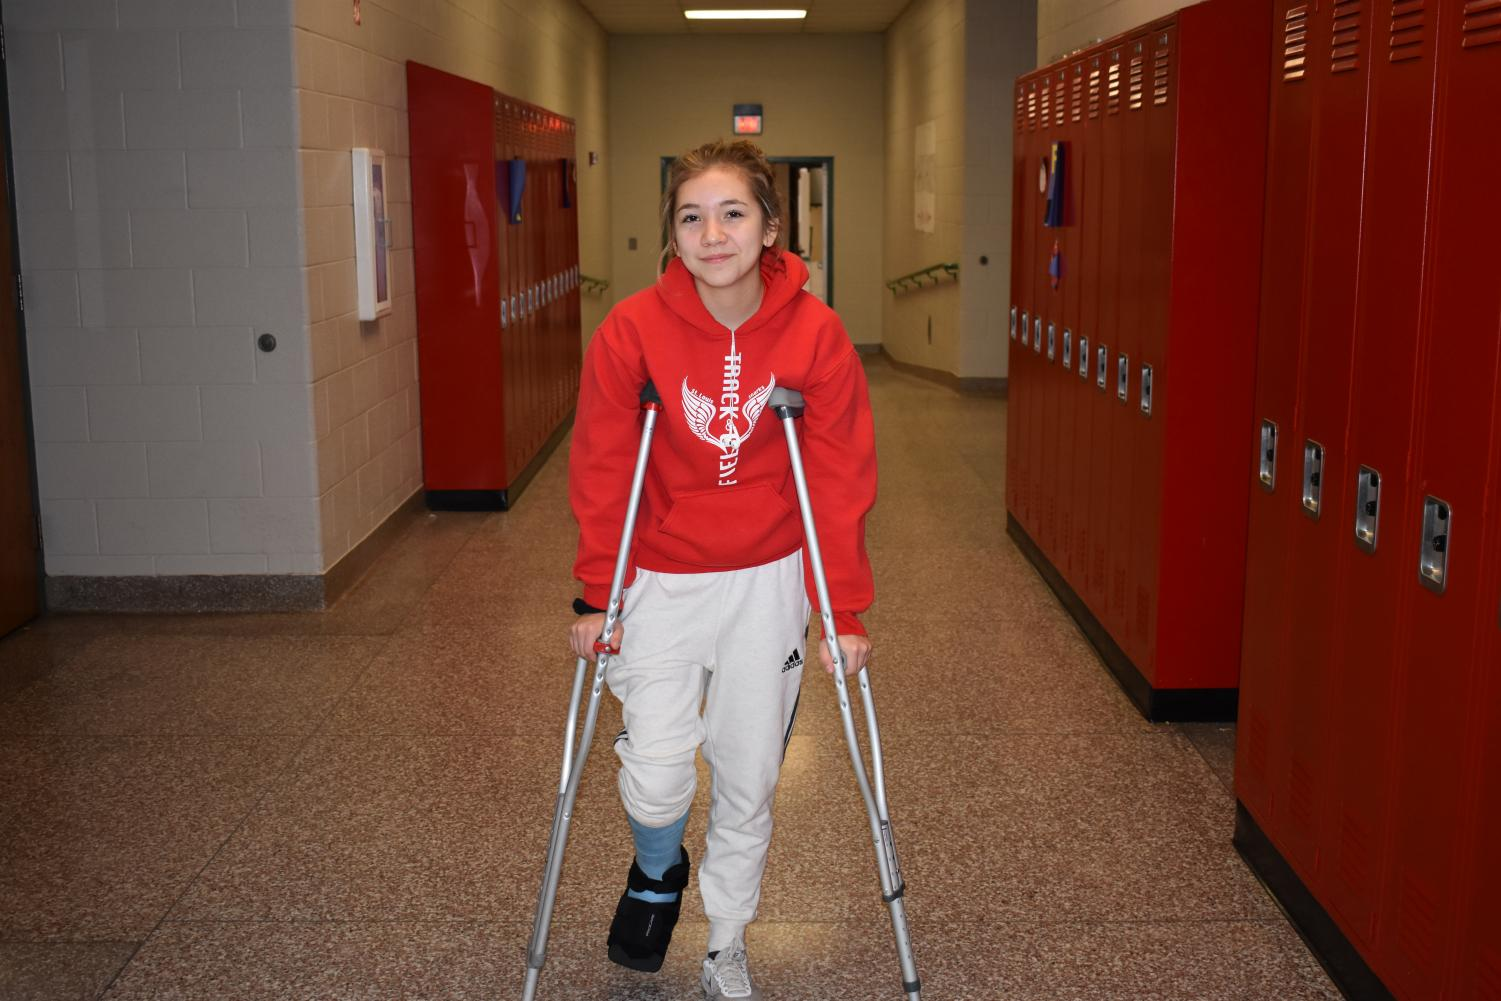 Mackenzie Allbee travels through the hallway using crutches.